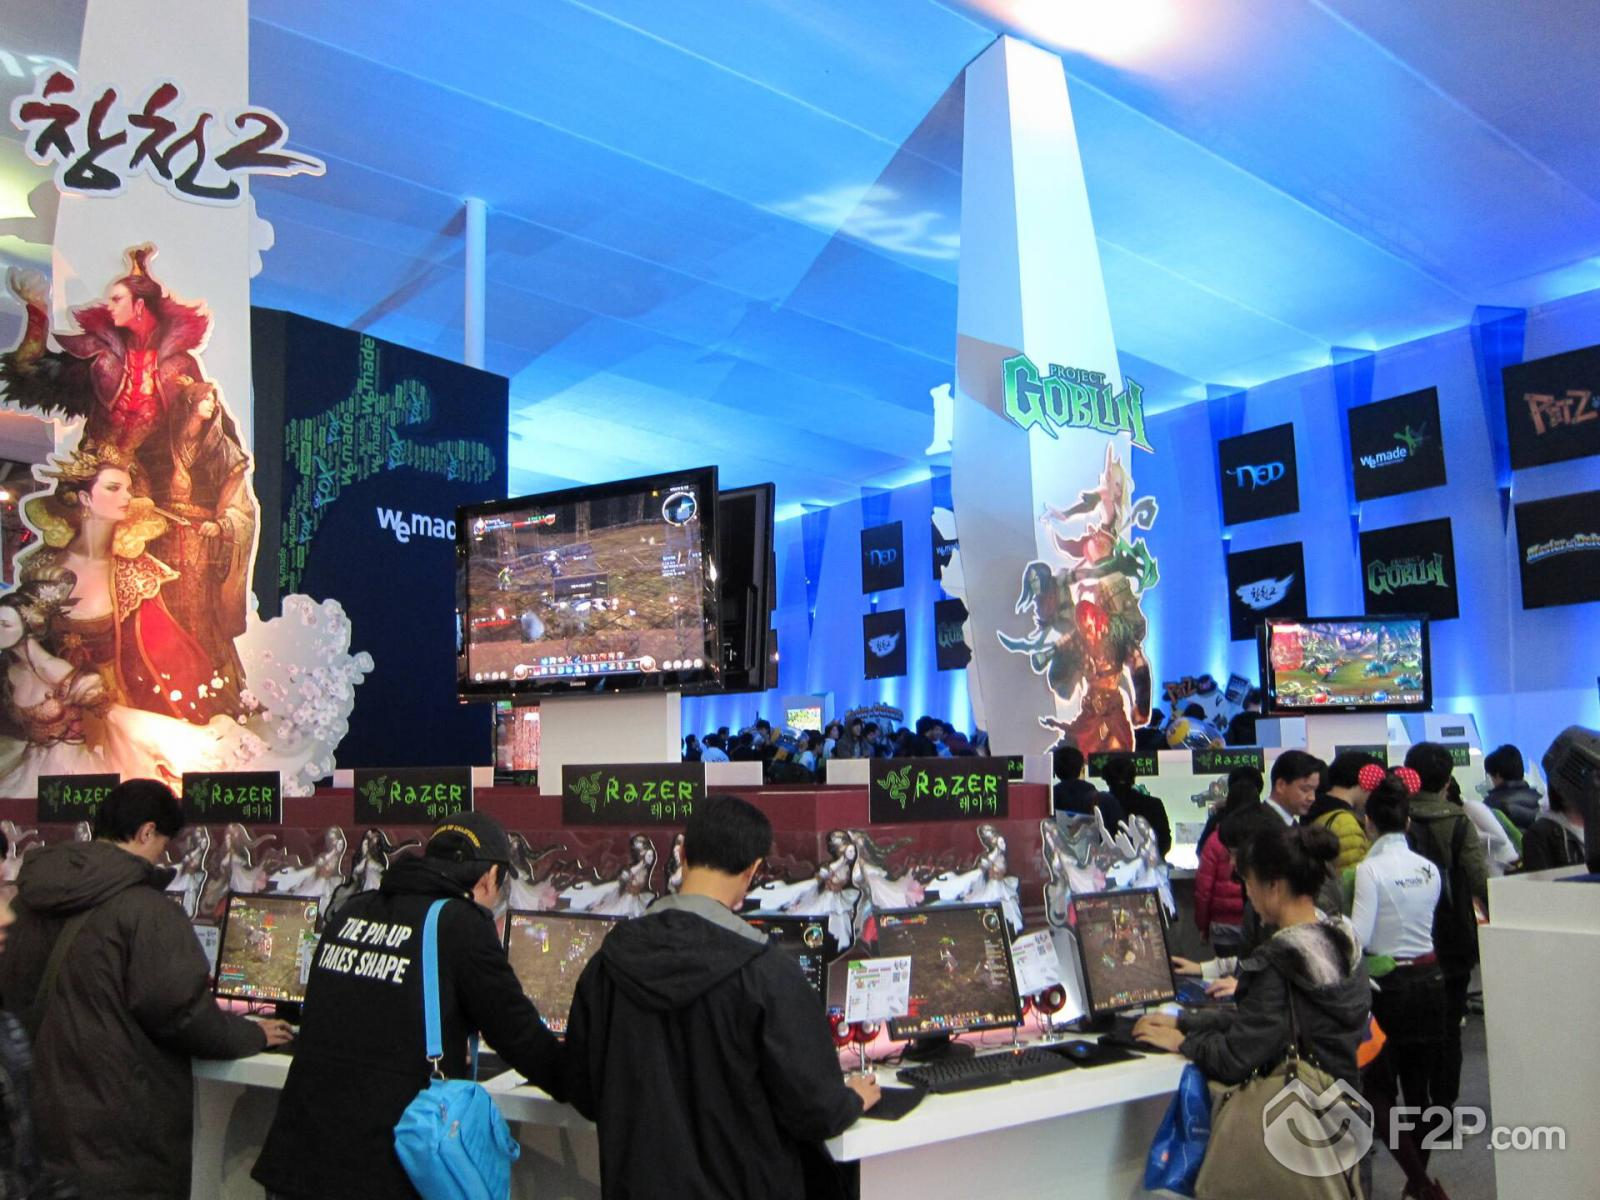 Click image for larger version.Name:G-Star 2010 F2P second day 13.jpgViews:50Size:232.4 KBID:2089